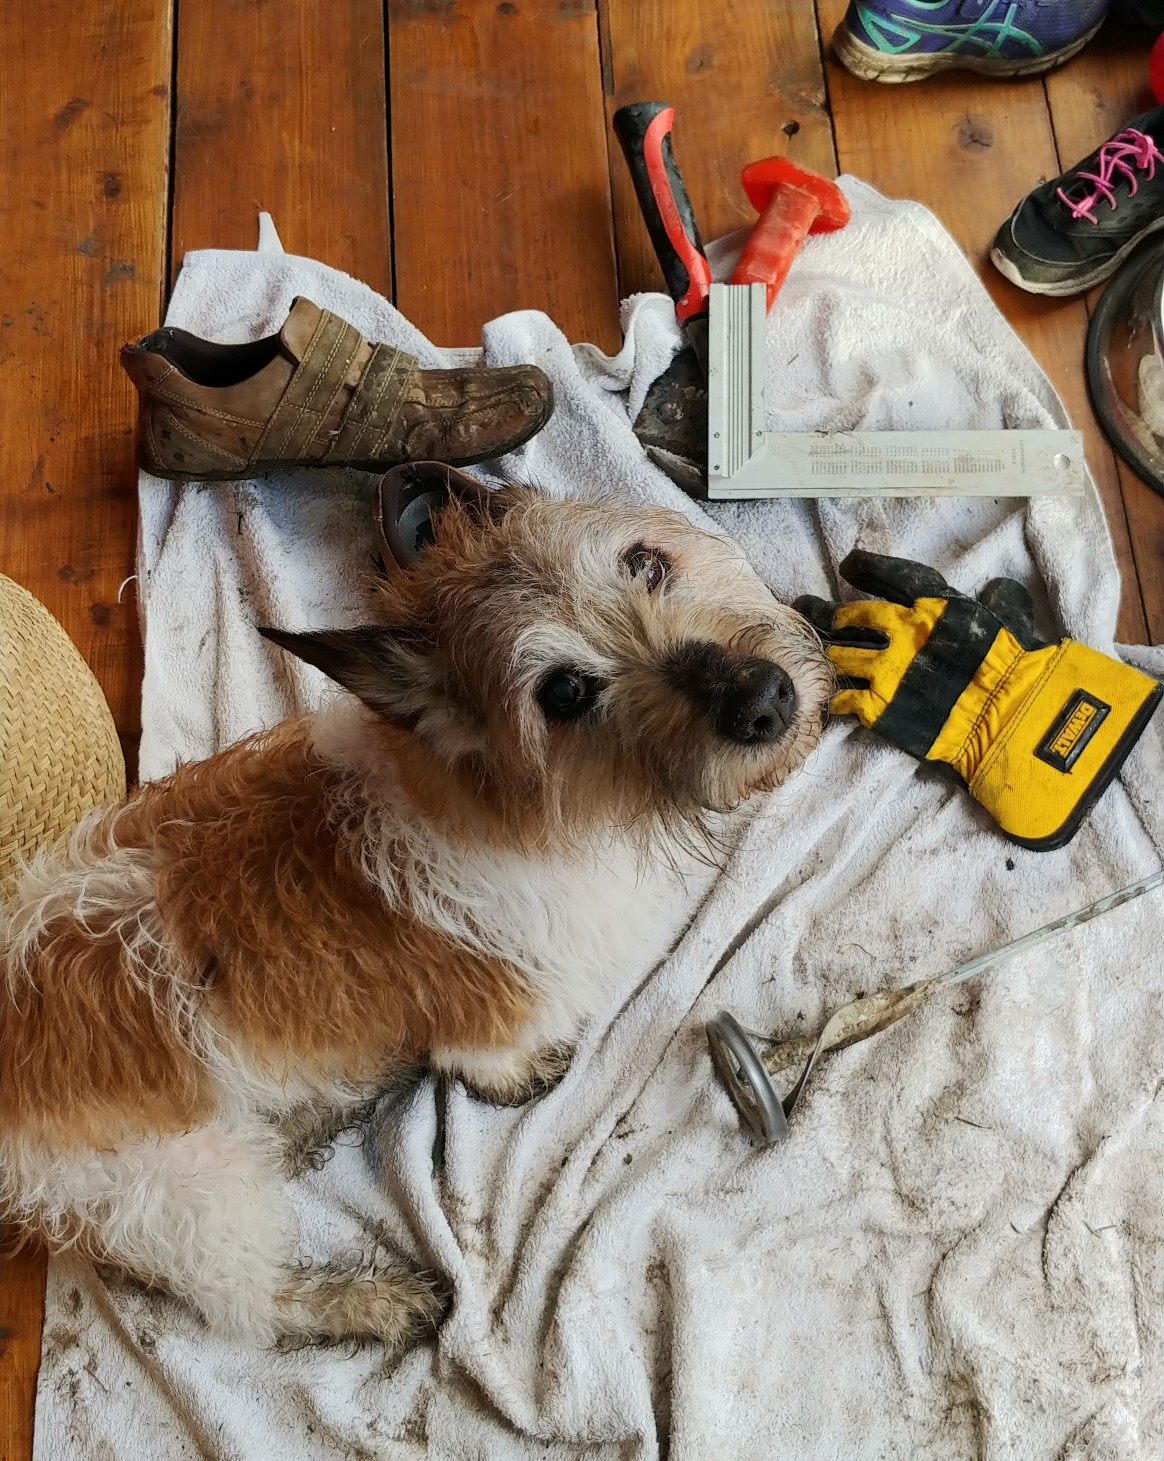 Every time it rained, we repaired indoors with a filthy Jack Russell.